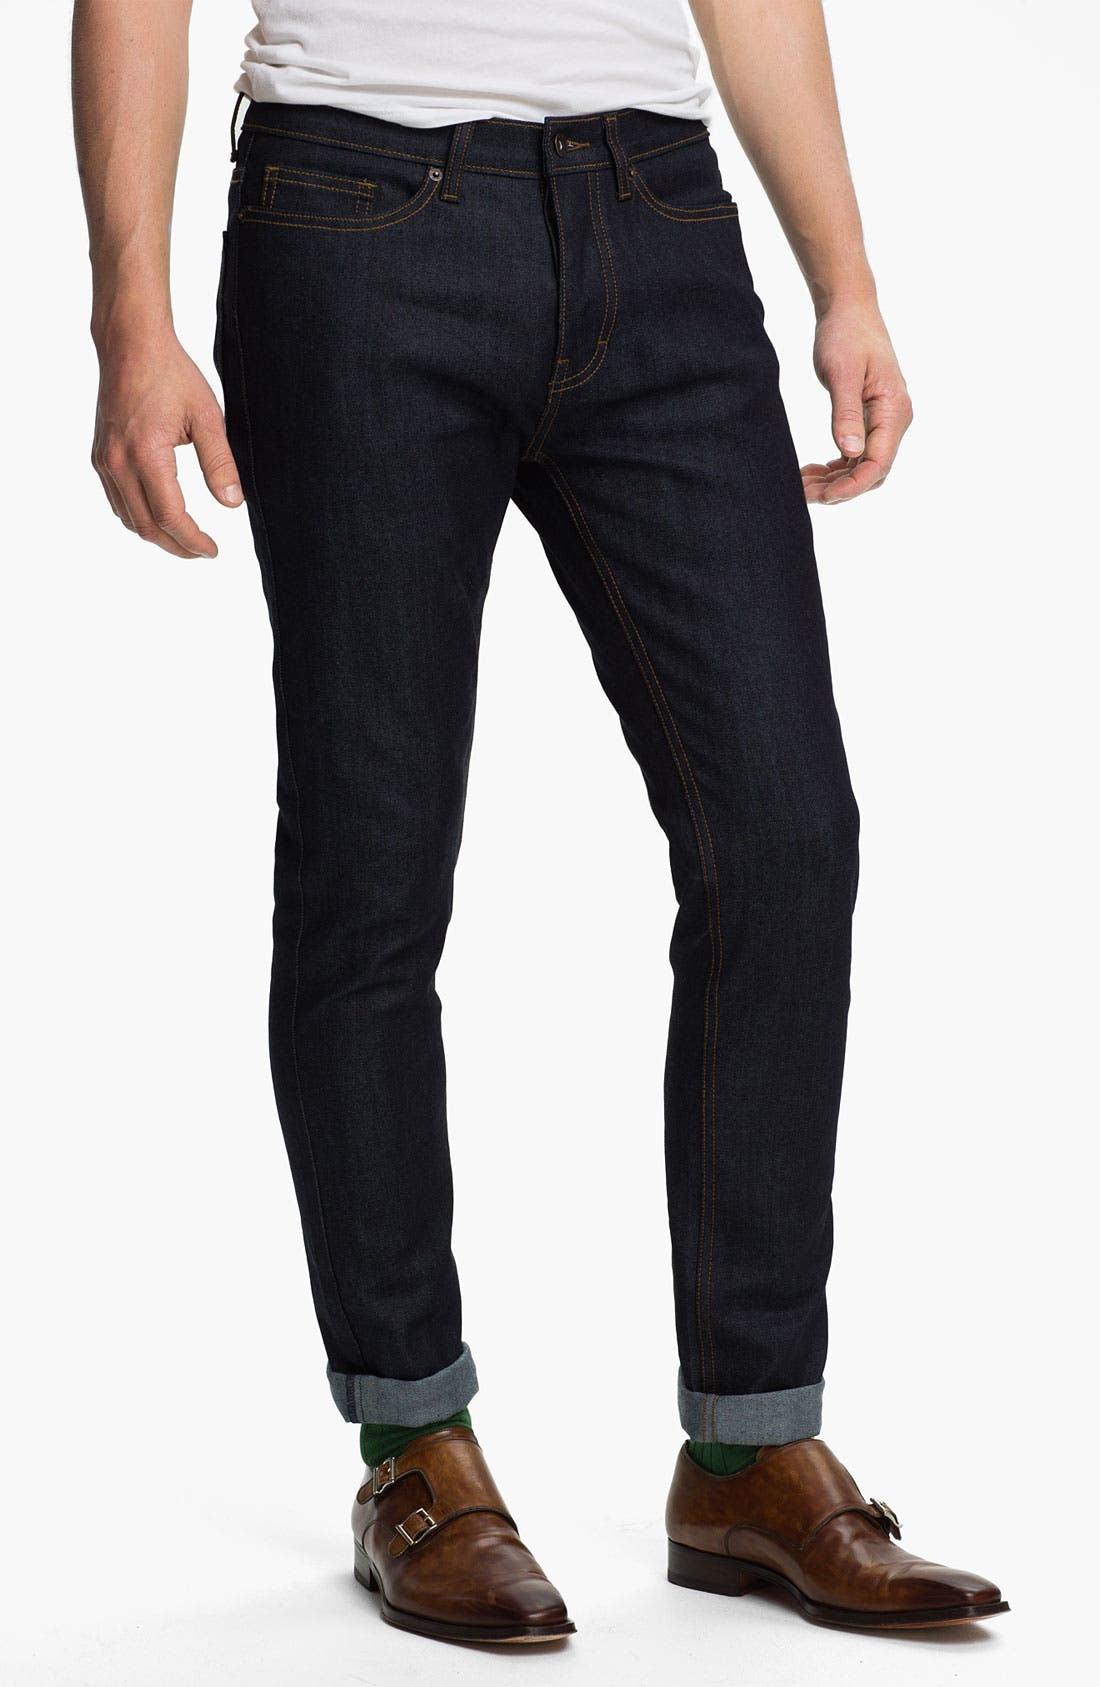 Alternate Image 1 Selected - Topman Skinny Fit Stretch Jeans (Dark Blue)